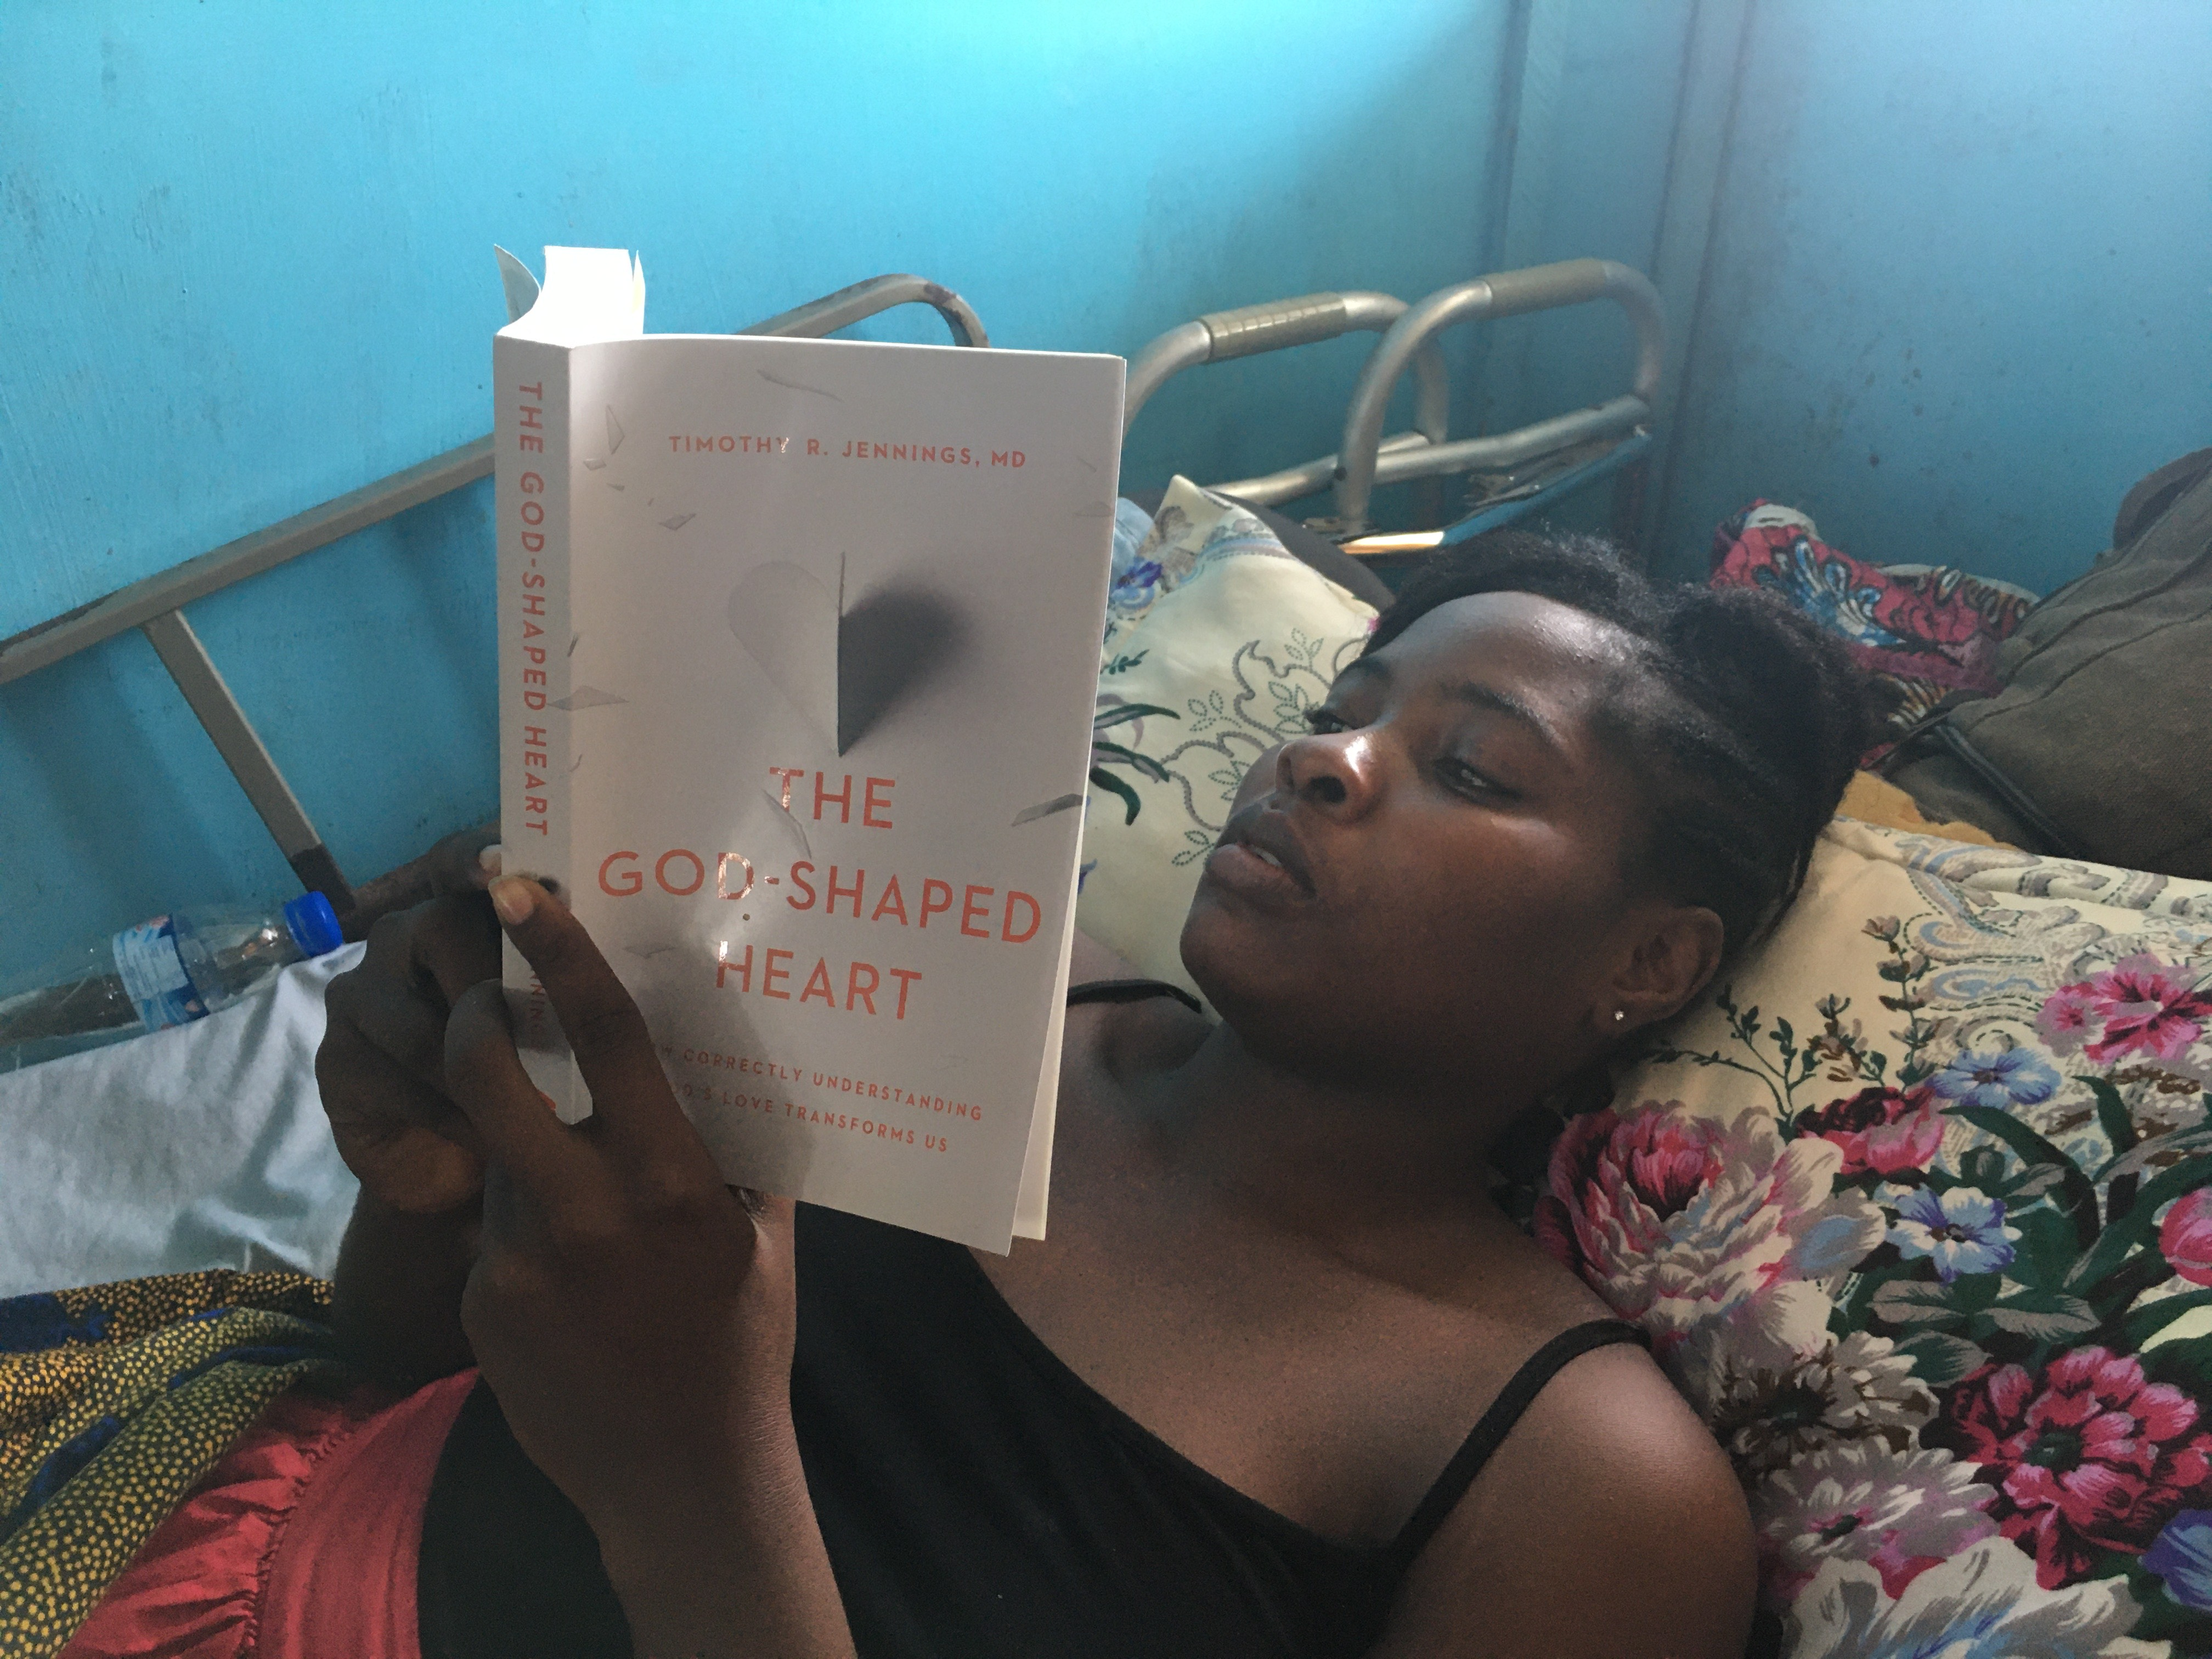 Patients in Liberian Hospital Get C&R Books